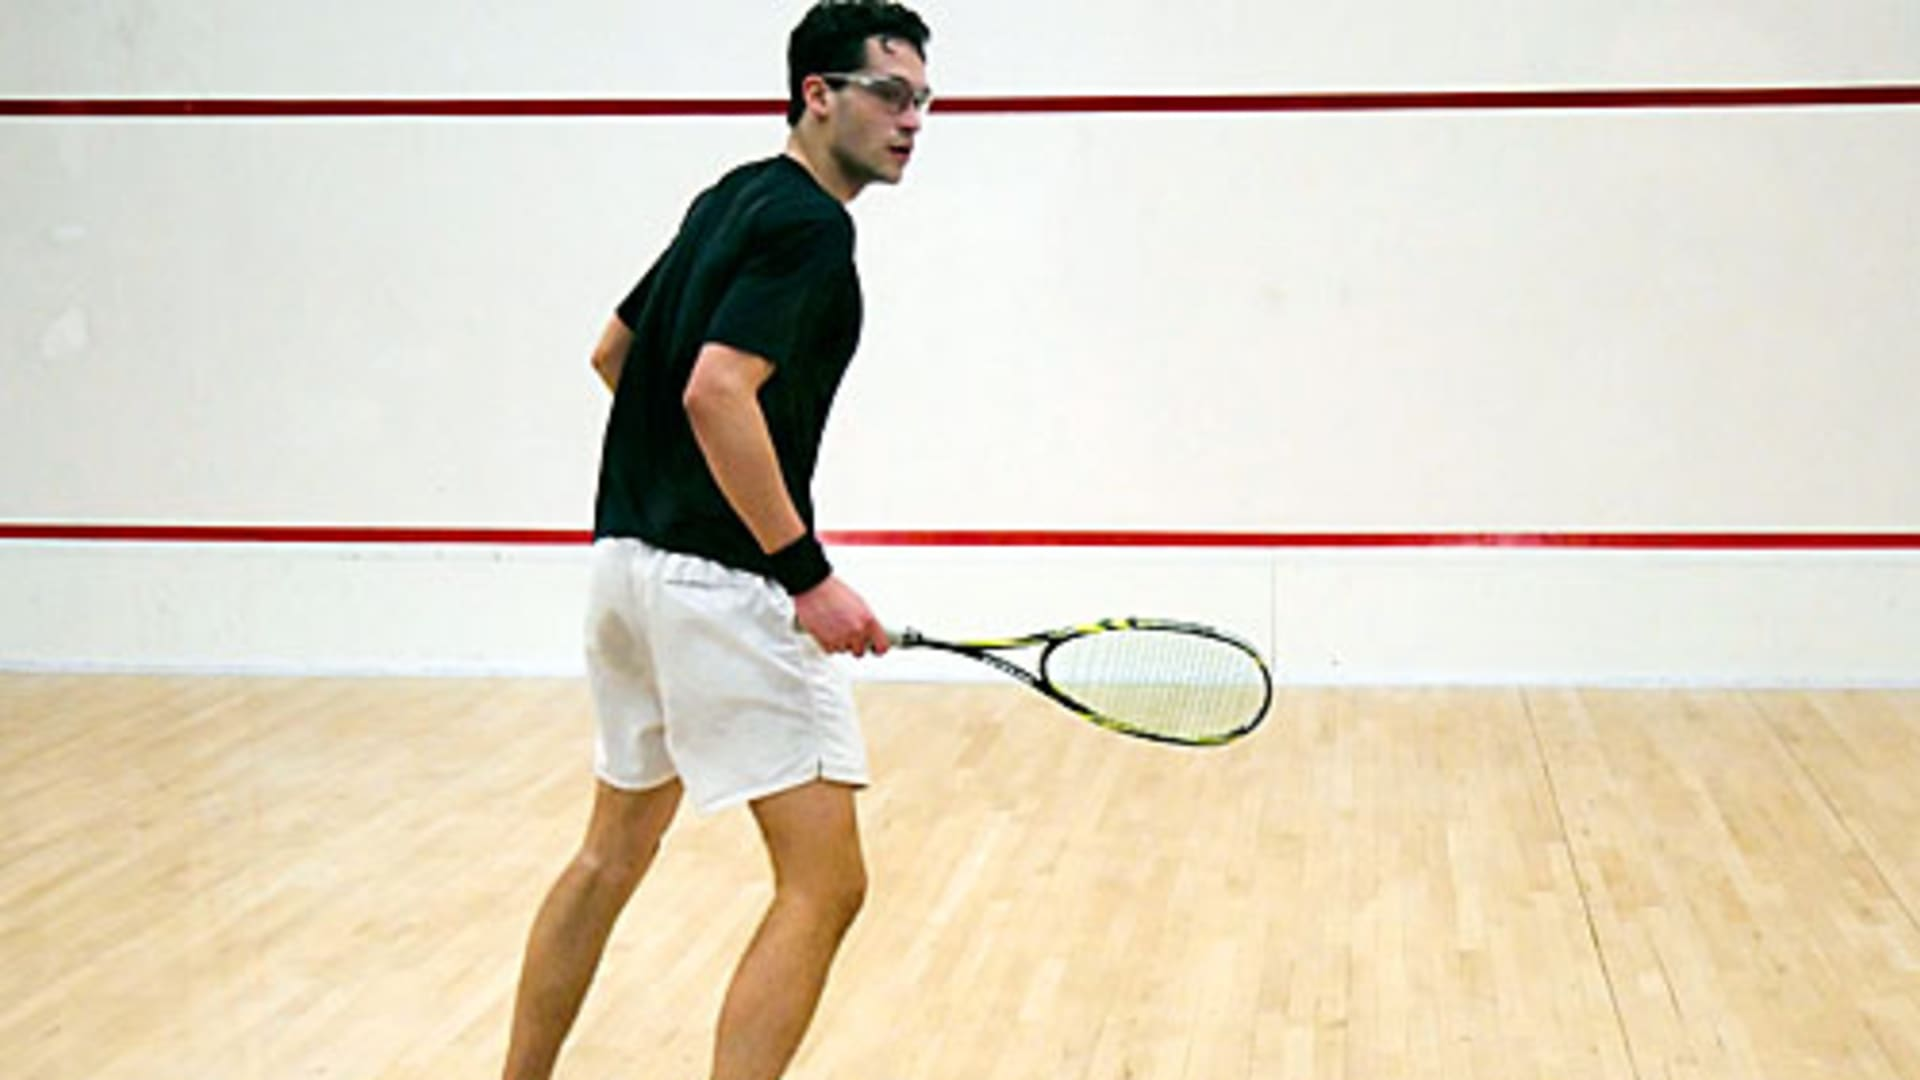 Will Ahmed playing squash at Harvard.